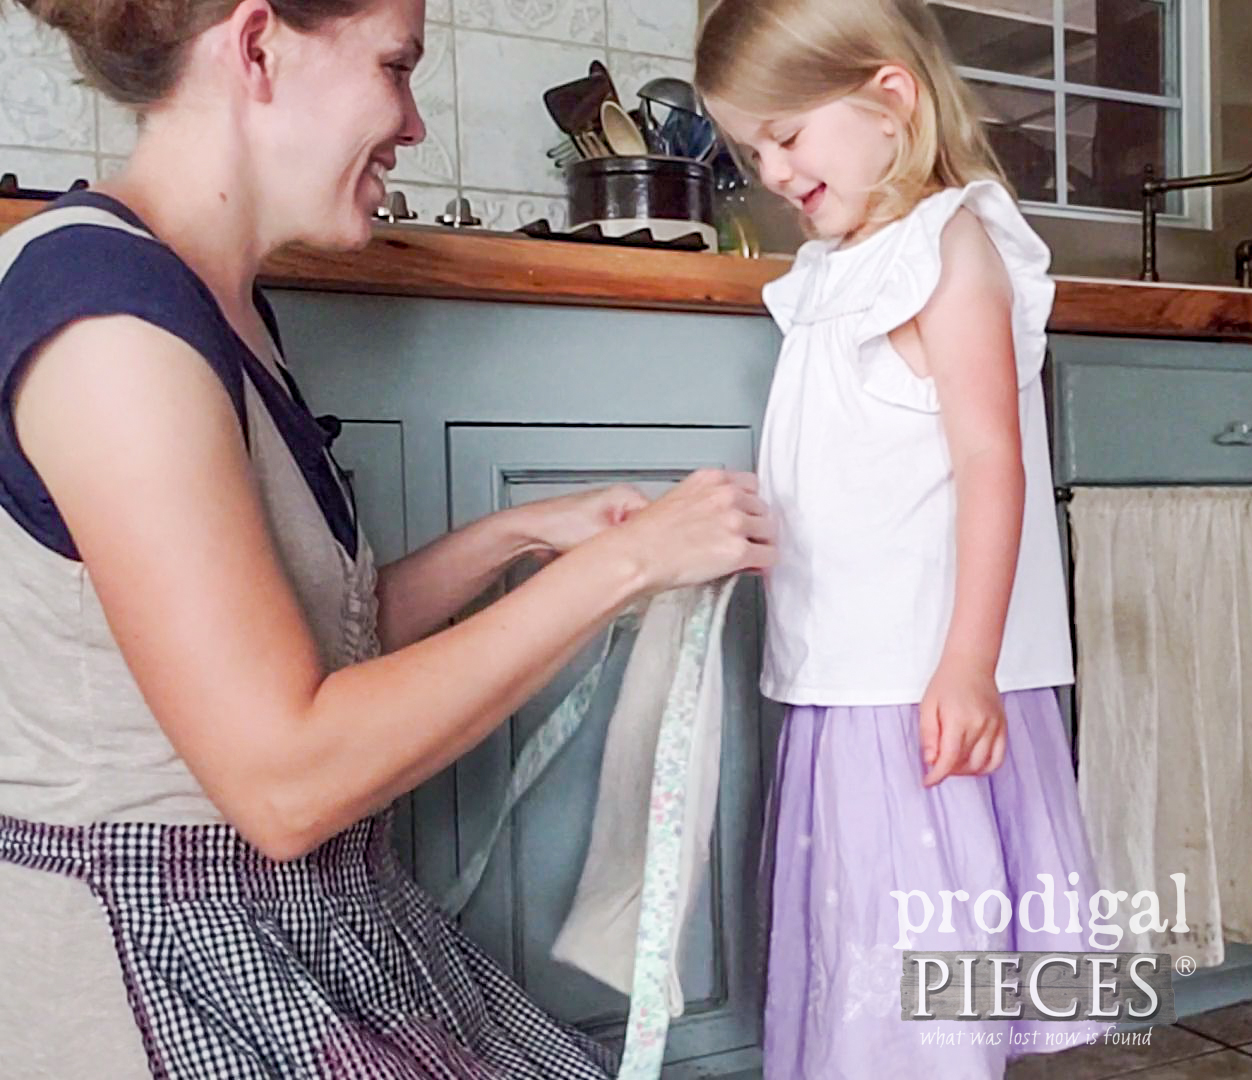 Mama Made DIY Child's Apron with Vintage Embroidery by Larissa of Prodigal Pieces | prodigalpieces.com #prodigalpieces #diy #handmade #sewing #kids